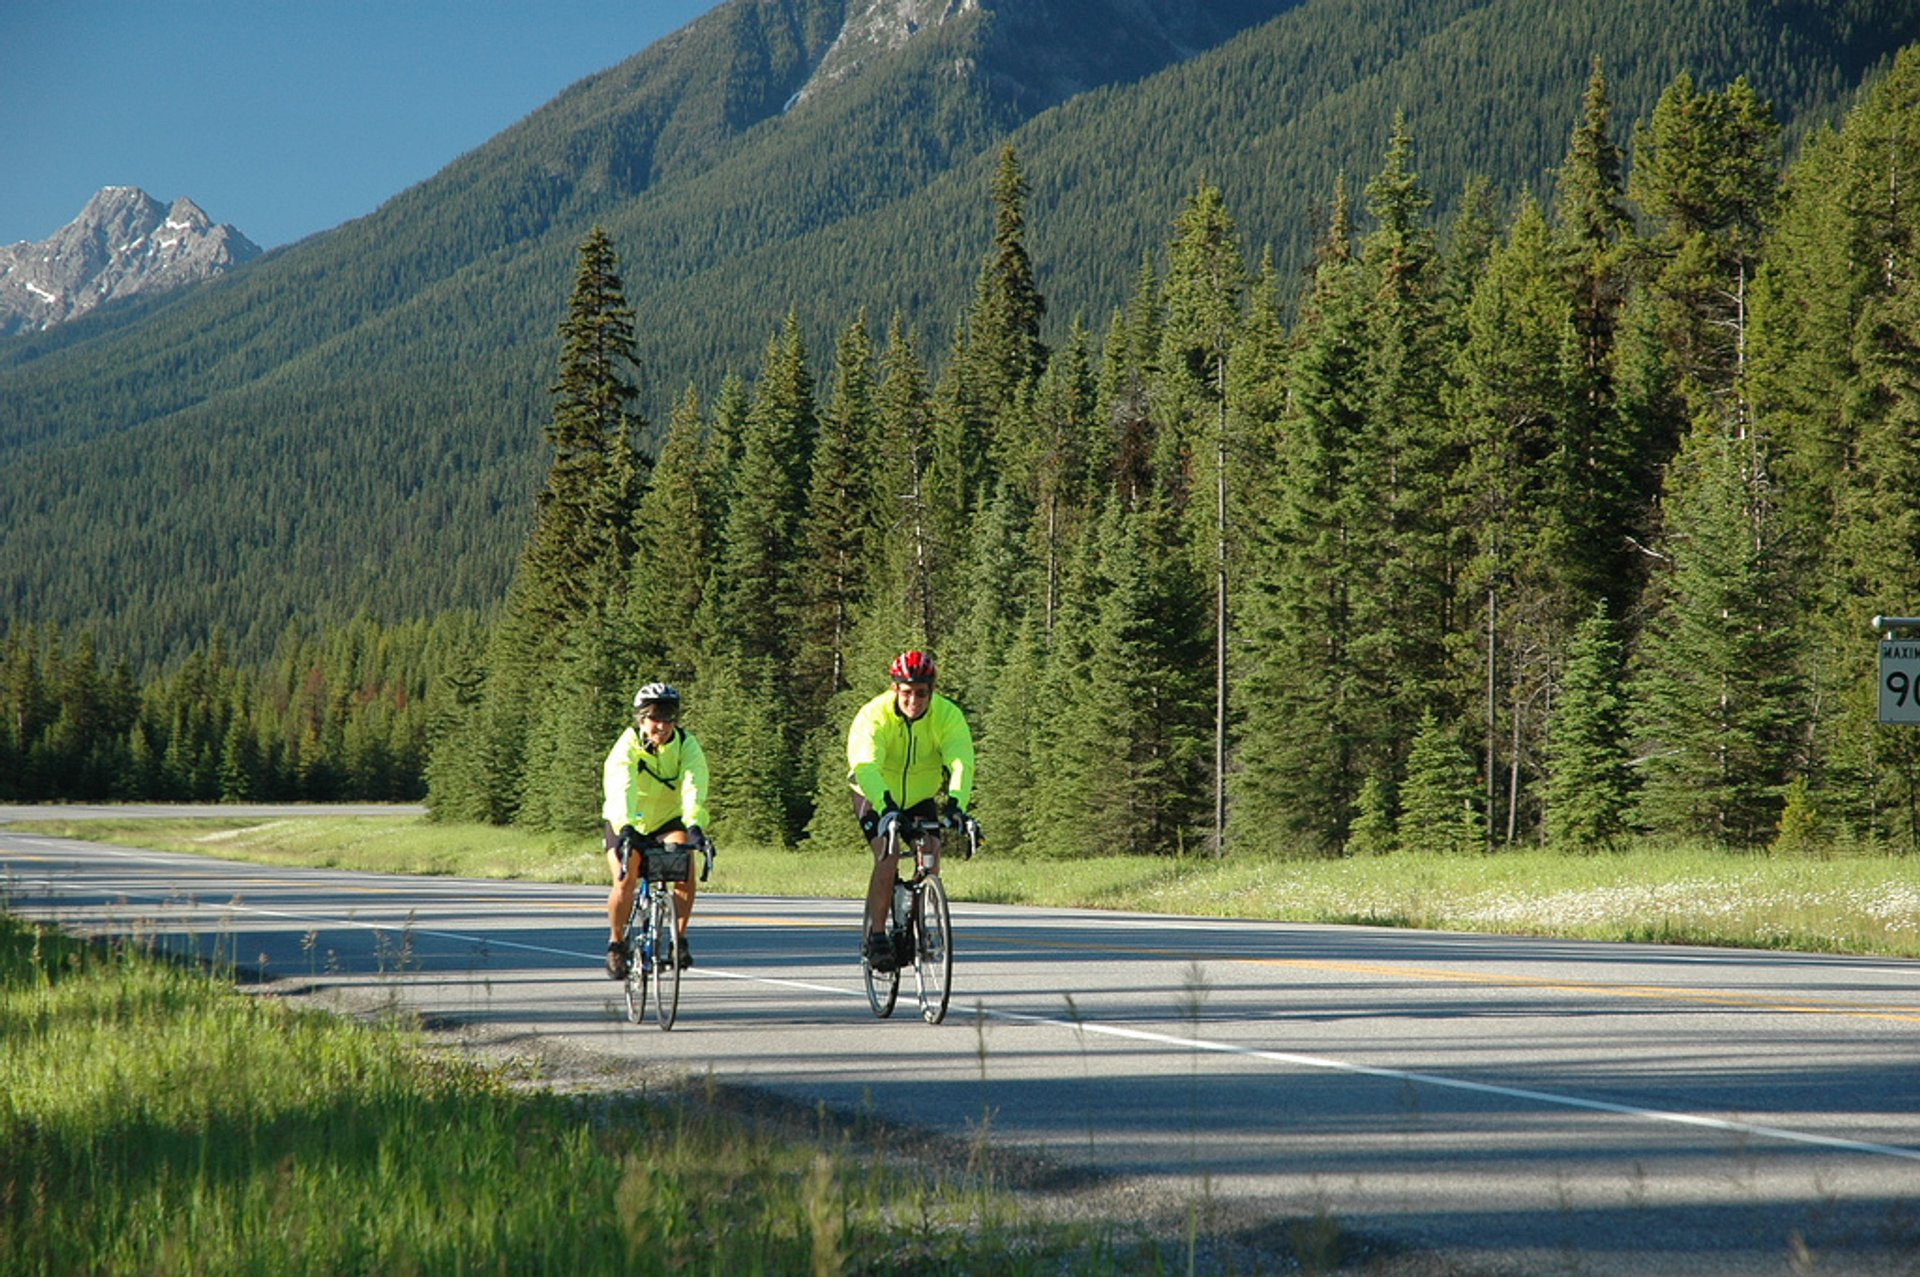 Best time to see Mountain Biking in Banff & Jasper National Parks 2020